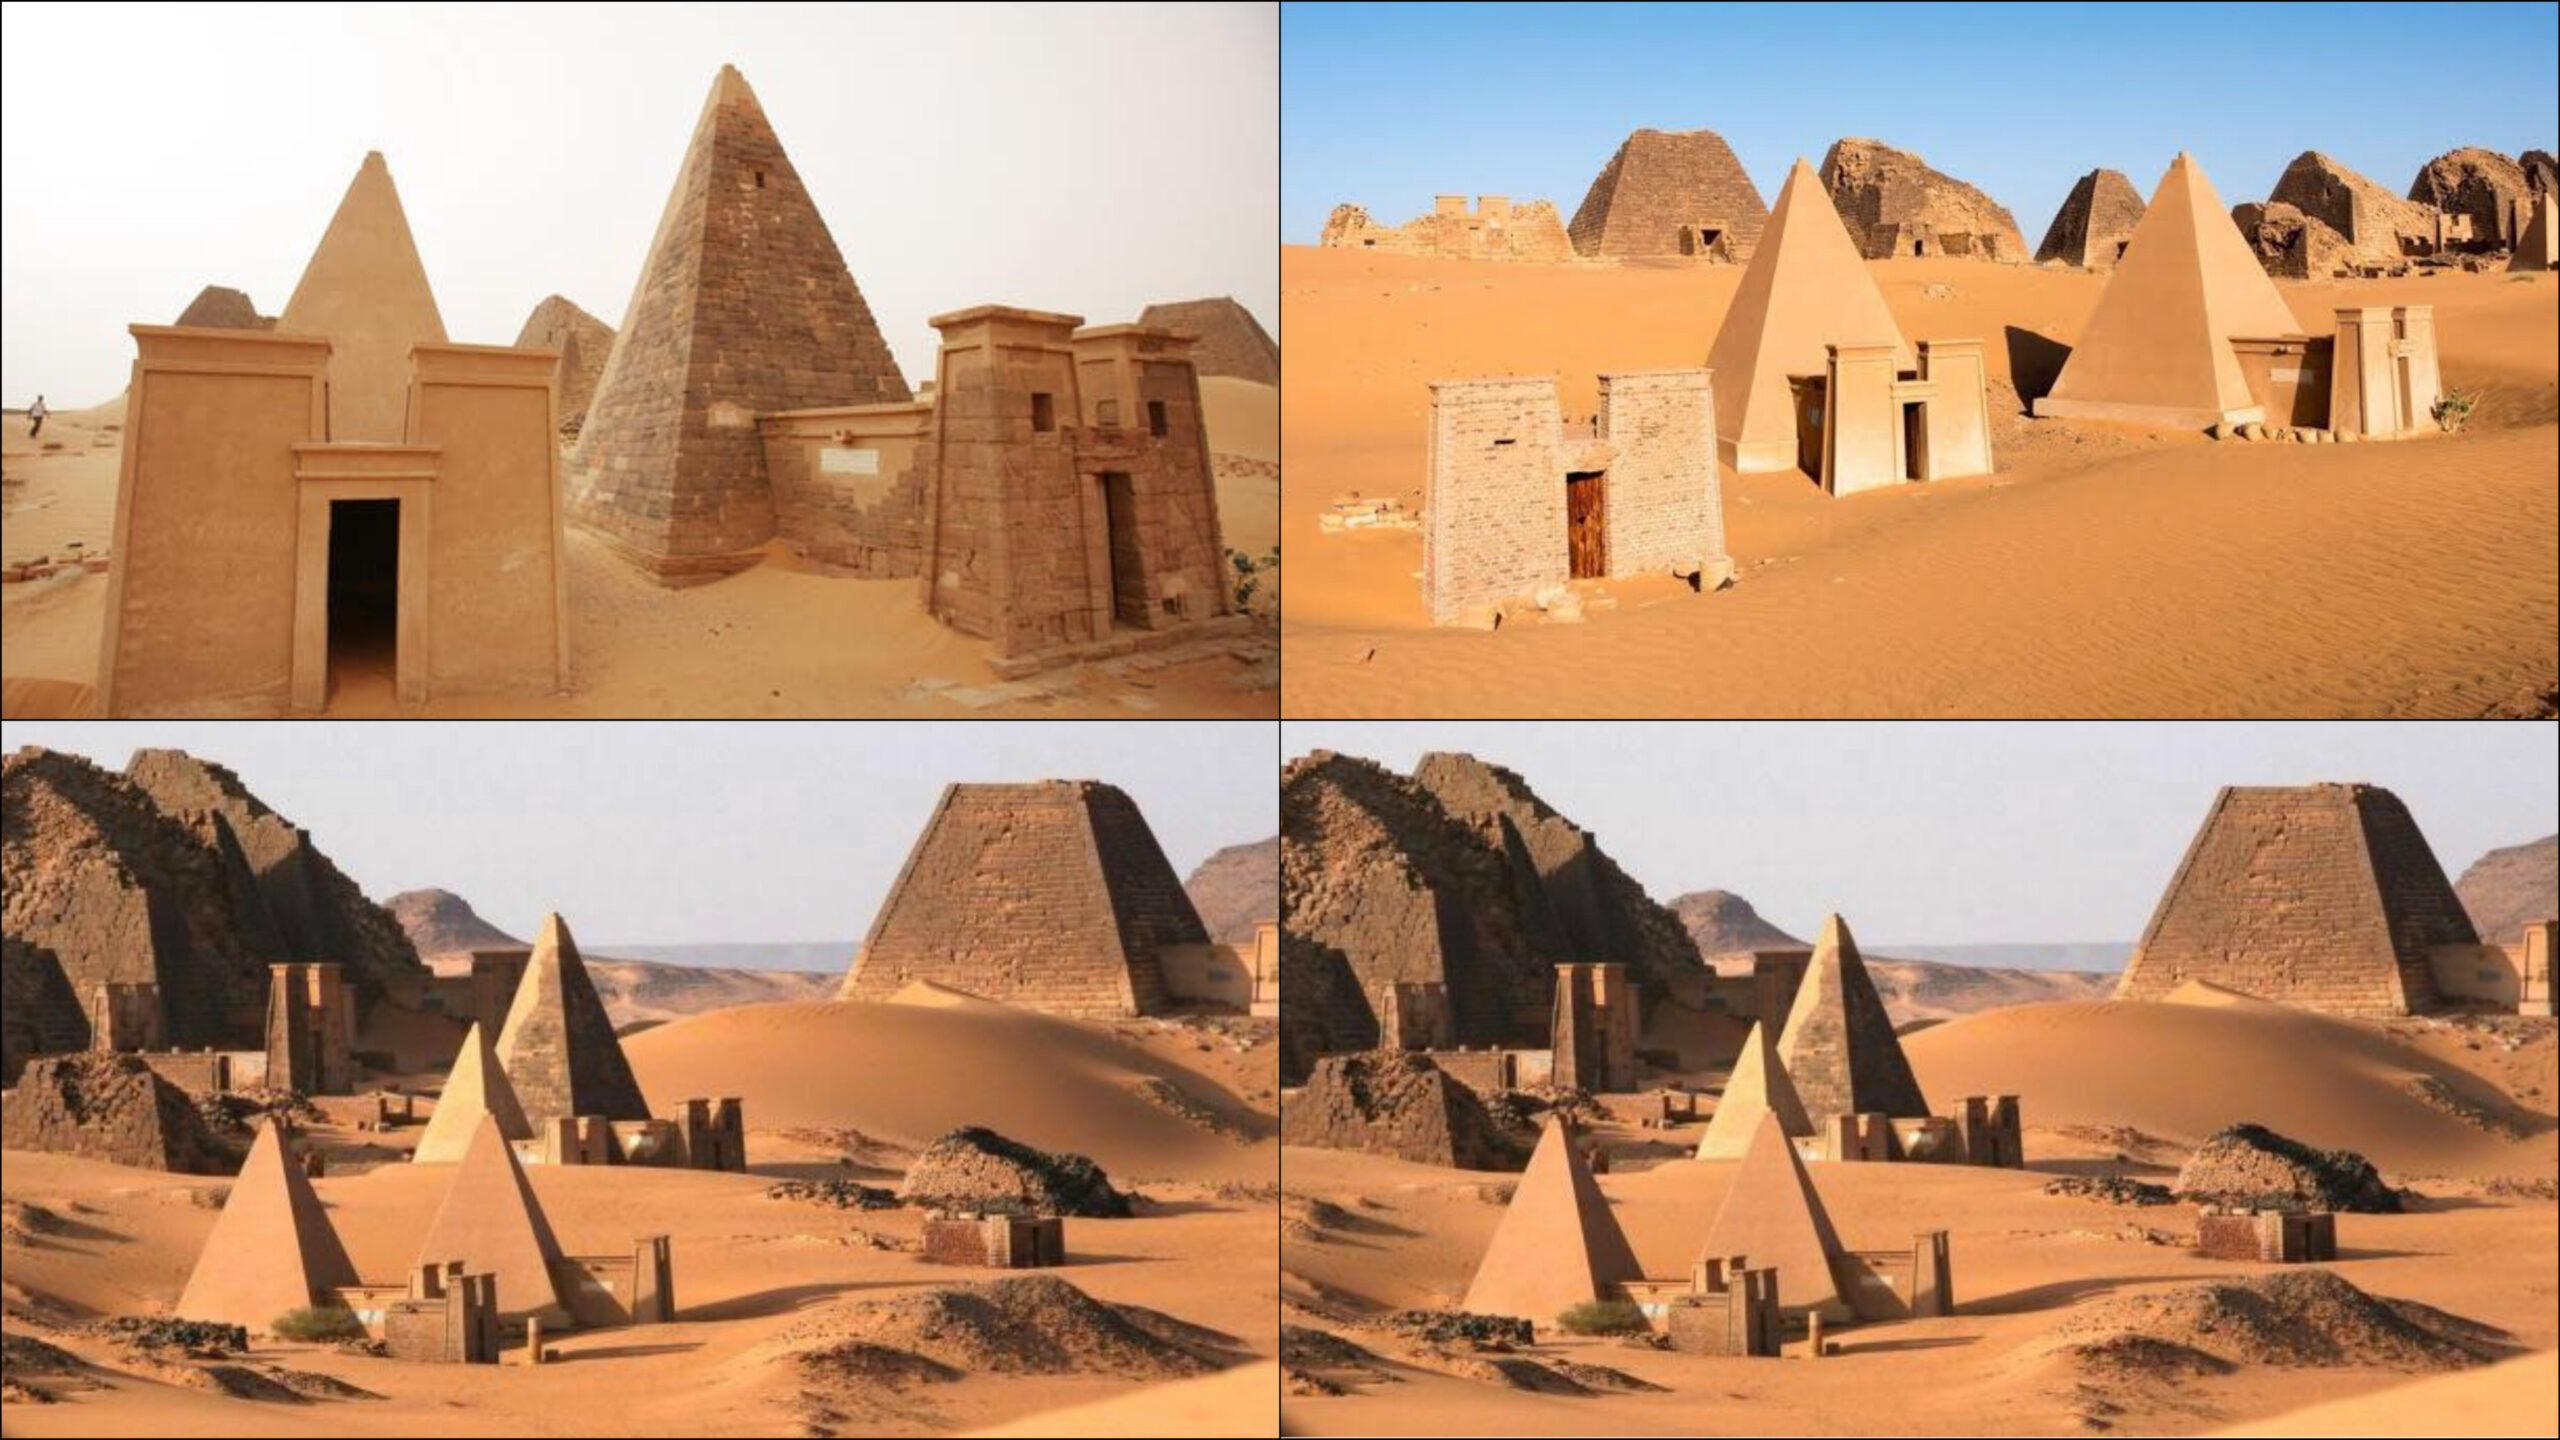 Kush Empire, present-day Sudan has more pyramids than Egypt